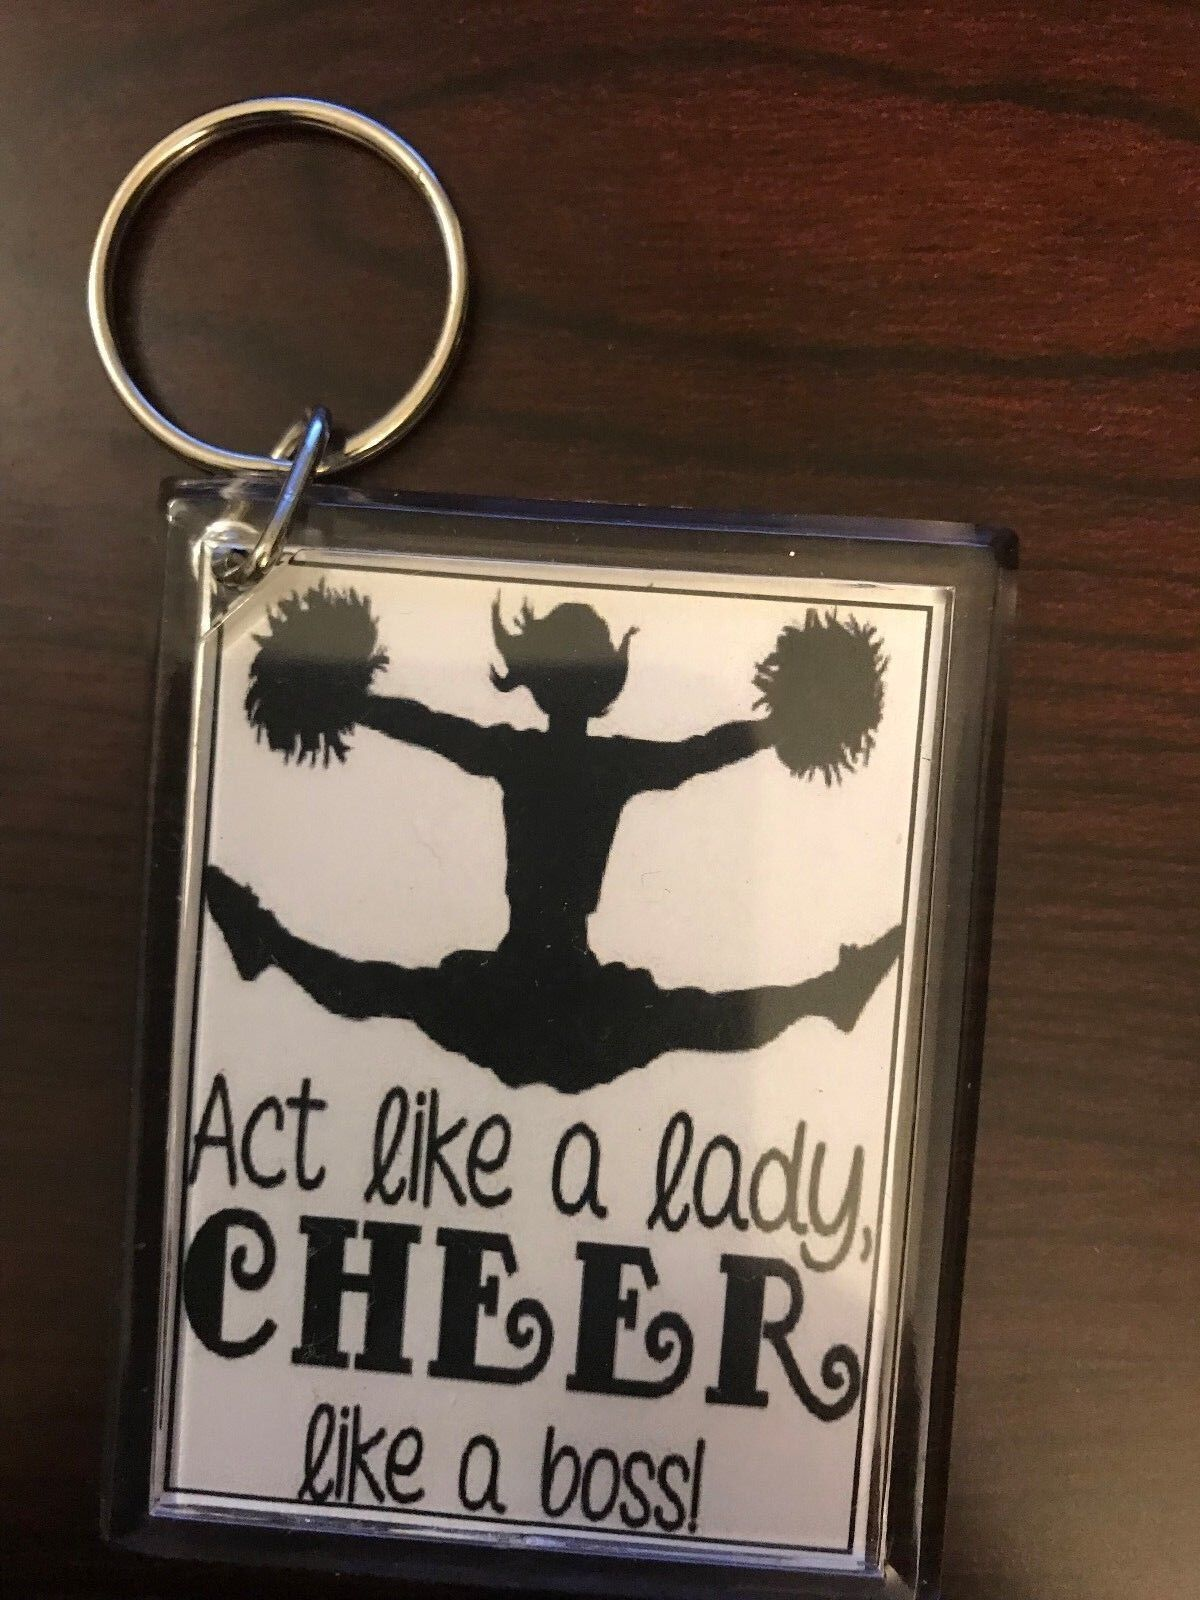 Cheerleading Keychain with Act Like a Lady Cheer Like a Boss